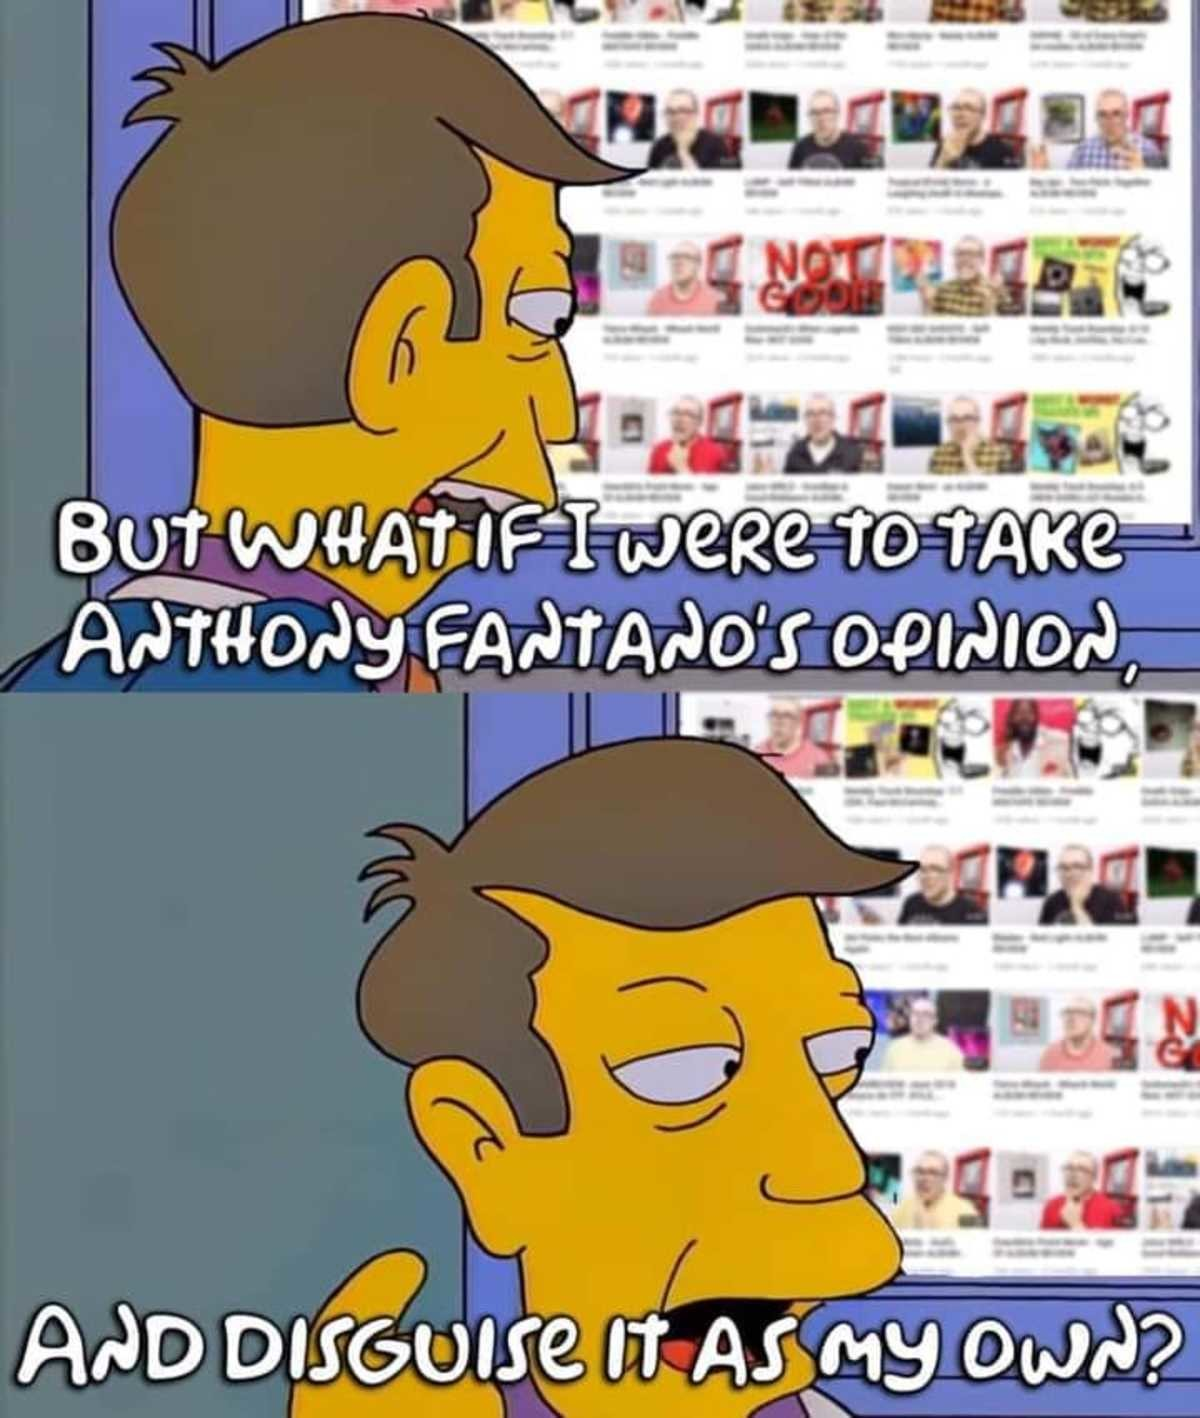 Delightfully devilish seymour. .. i dont know who he is am i supposed to think he's a faggot or that he's based